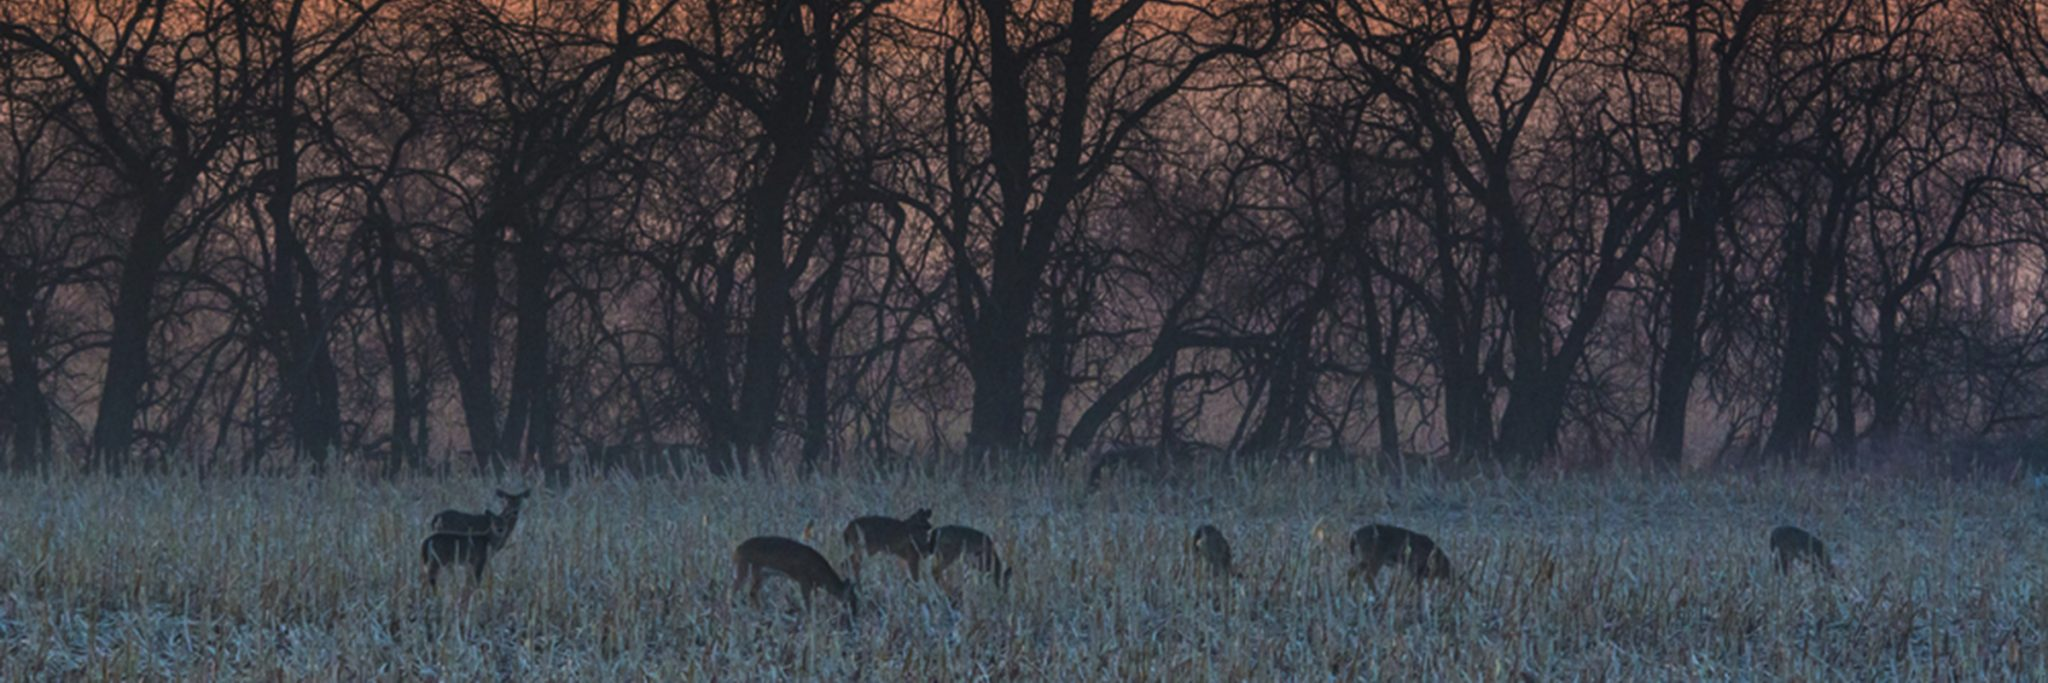 Photo of Deer Grazing